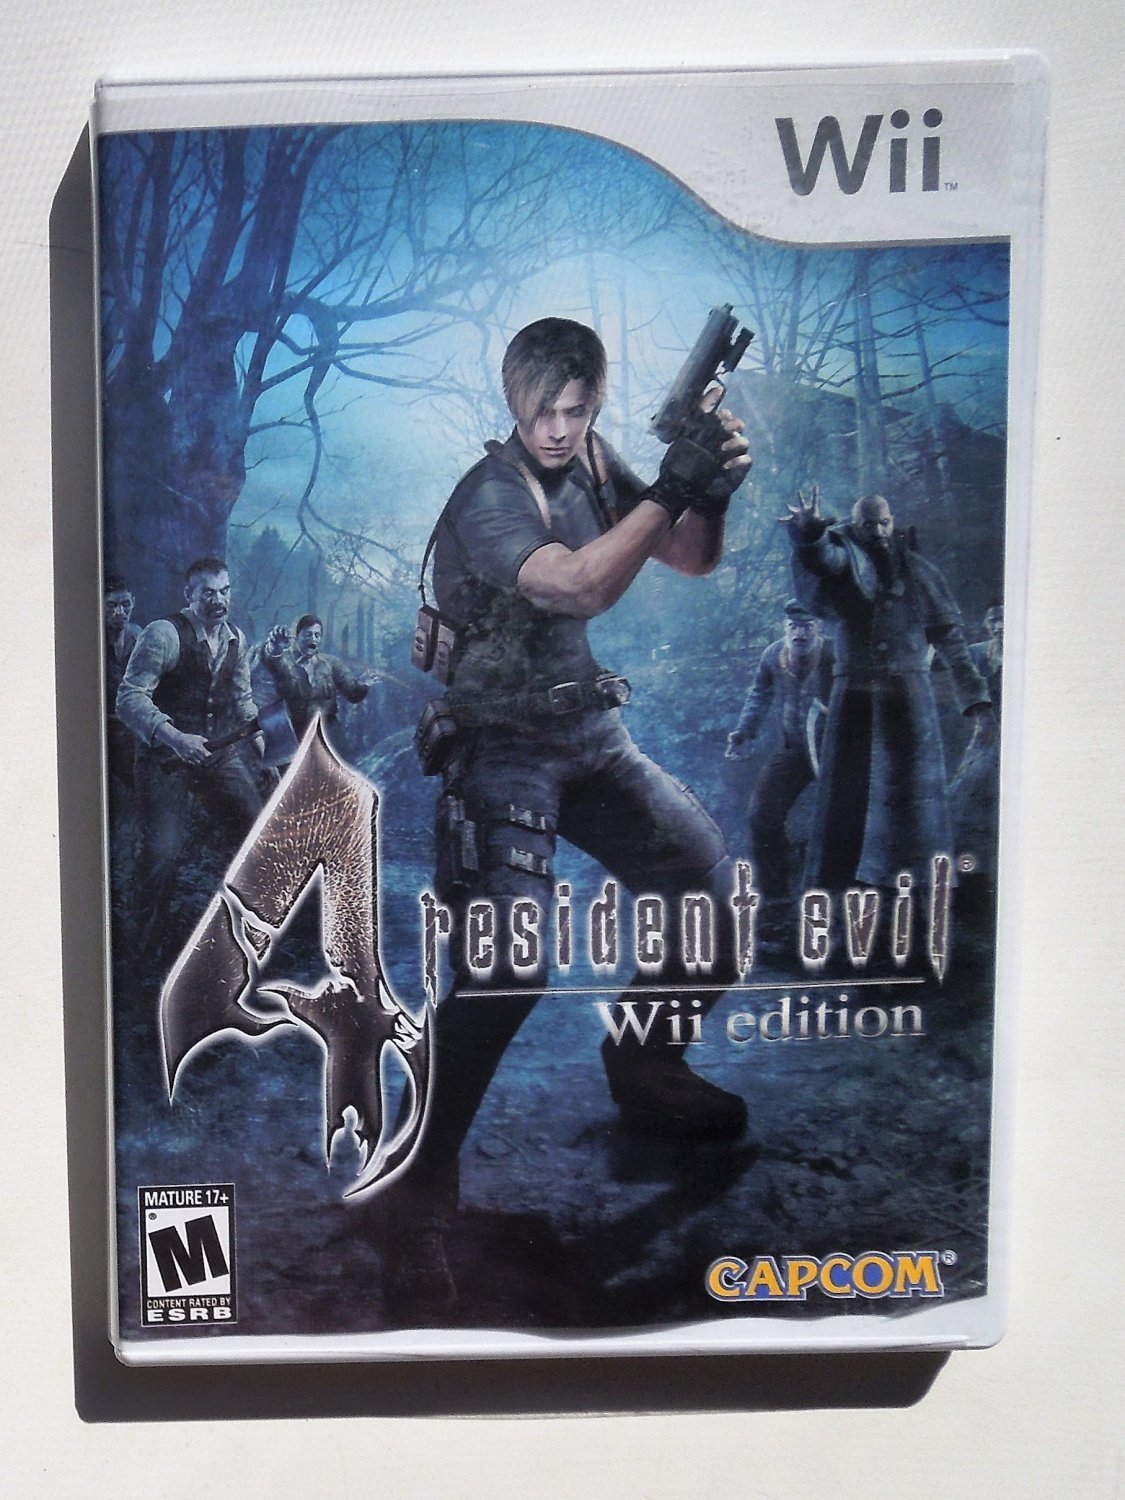 2007 Capcom Resident Evil 4 For Nintendo Wii Game Systems